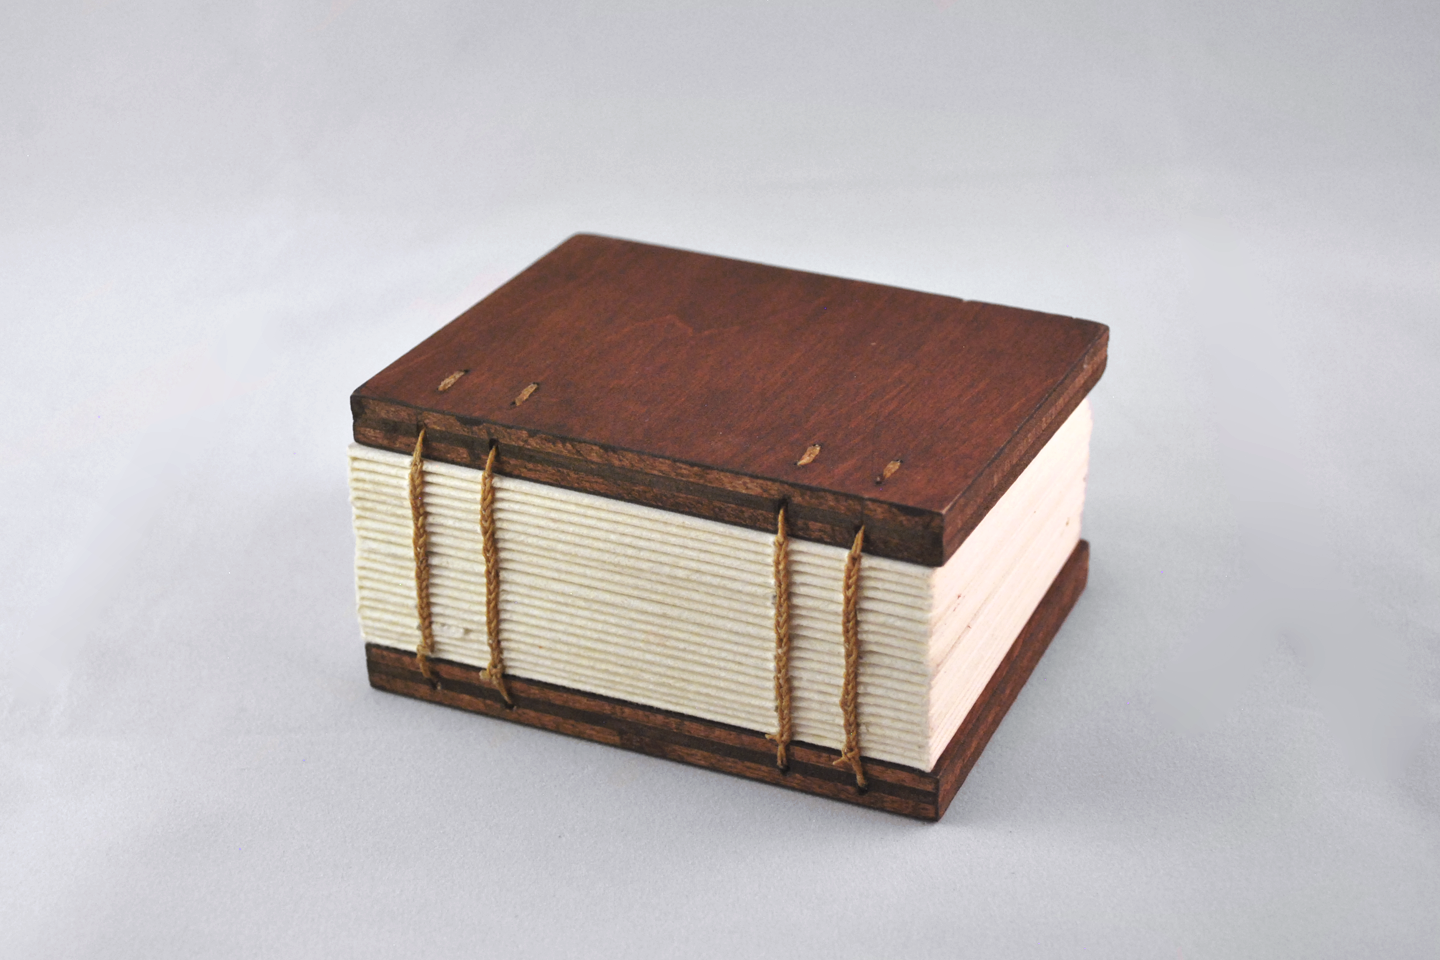 Coptic Stitch Books - My favorite binding! Great for guestbooks and photo albums because they lay flat. Exposed spine is a nice design feature.